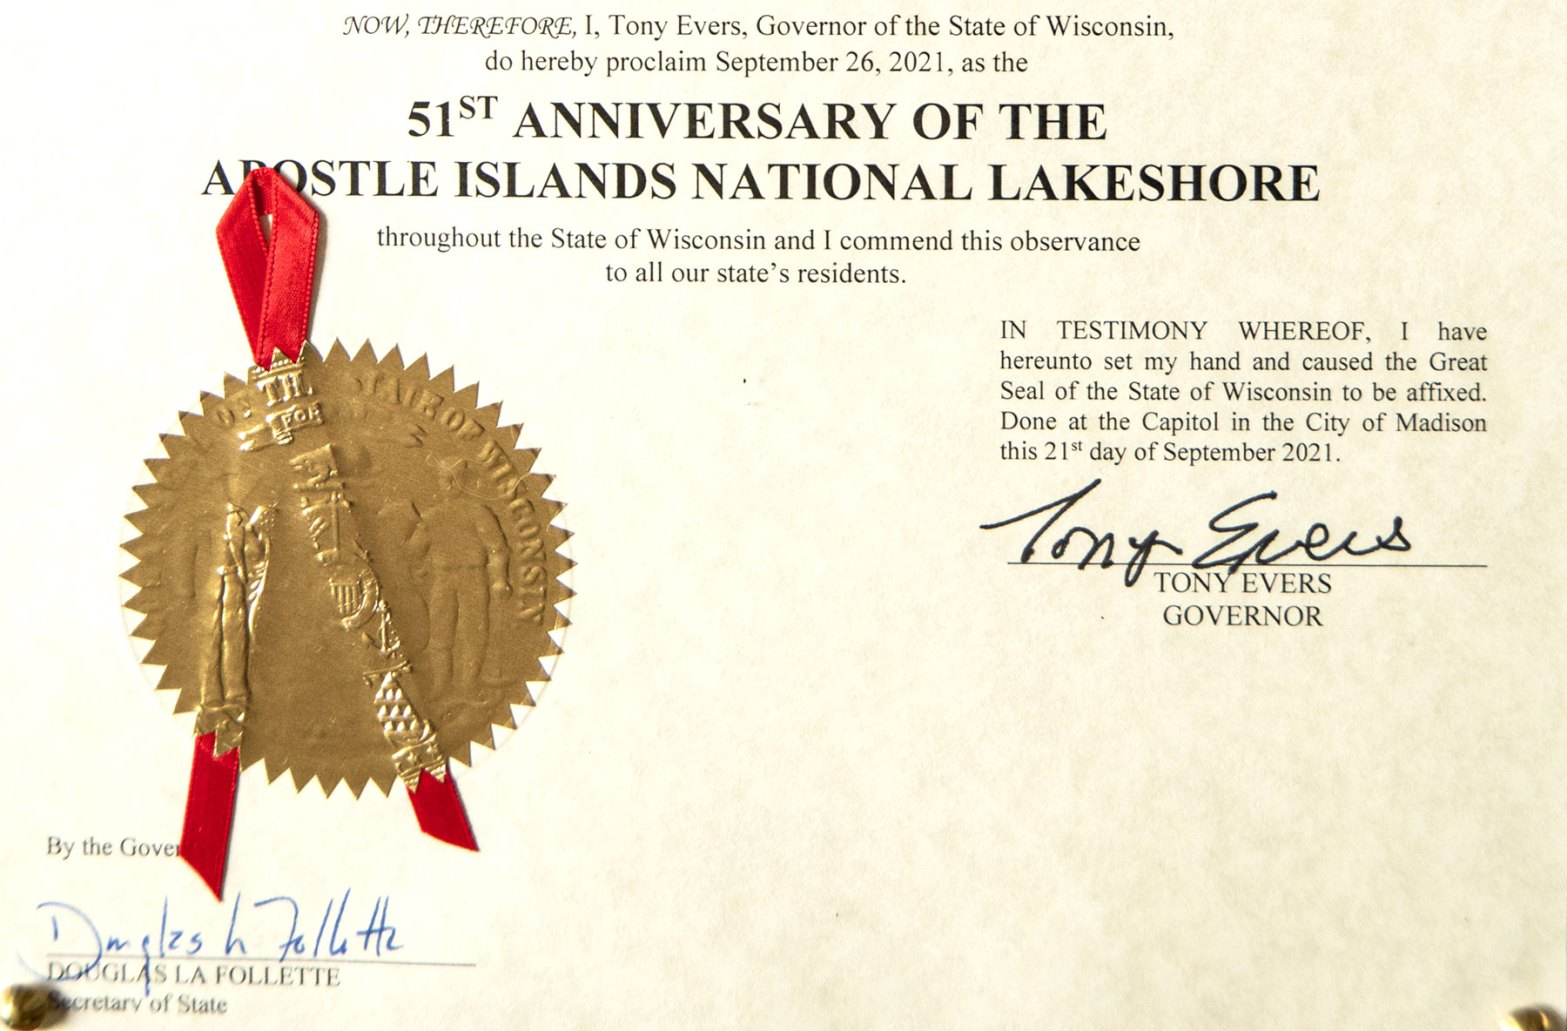 Governor's proclamation seal